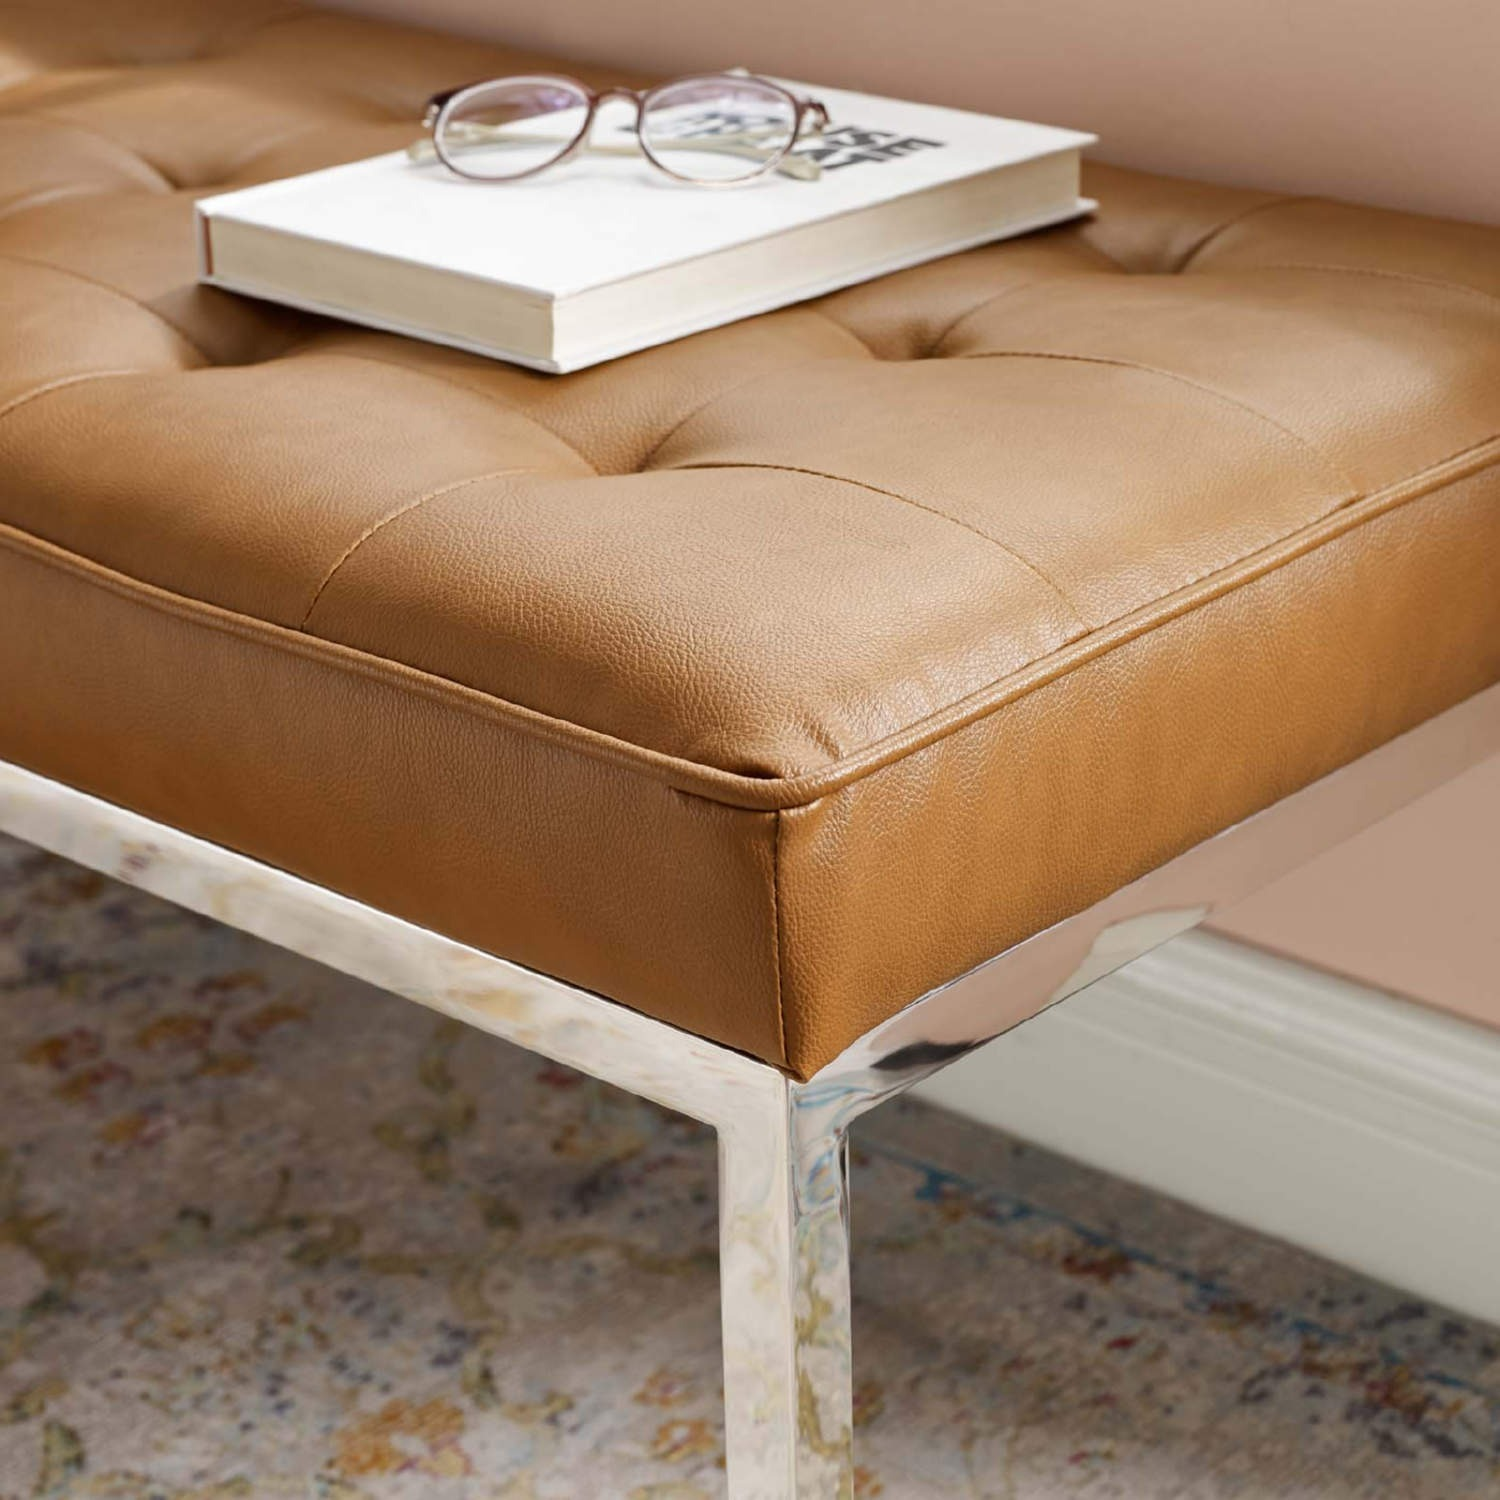 Bench In Tan Faux Leather W/ Silver Frame Finish - image-3